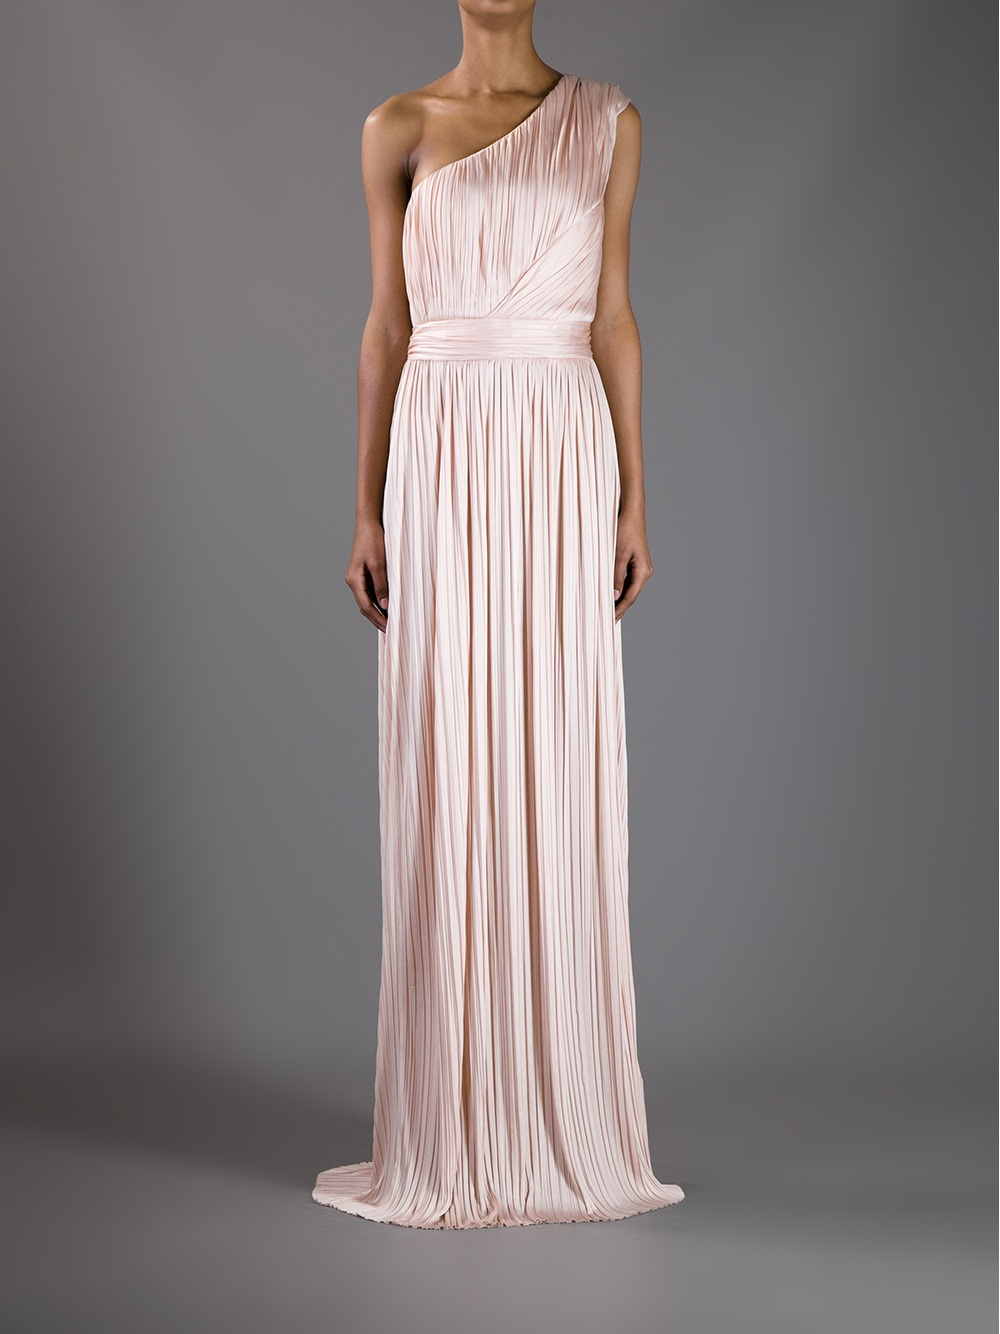 Lyst Givenchy One Shoulder Evening Dress In Pink